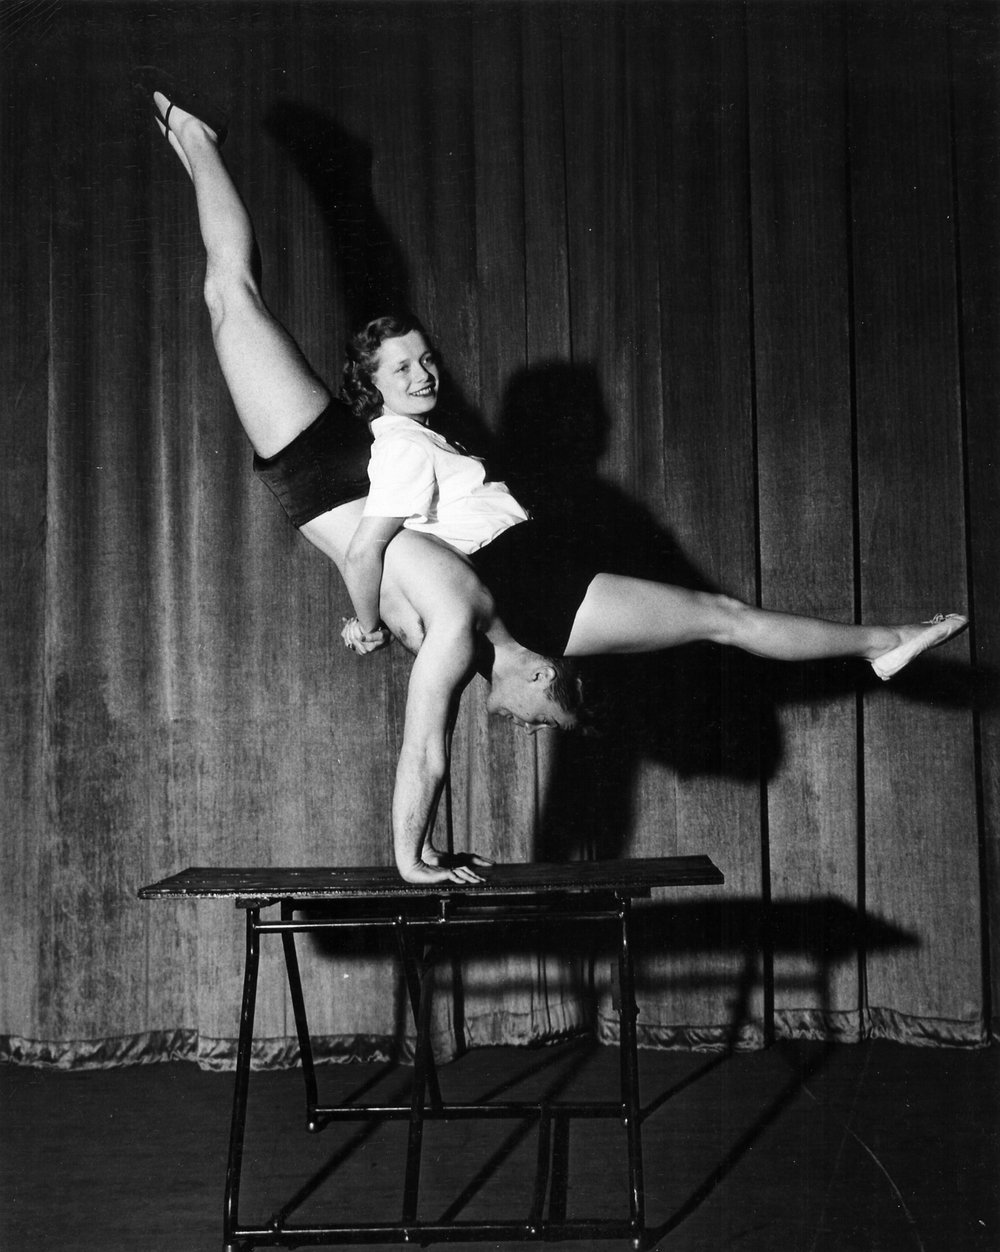 Gymkana 1949 mixed doubles balancing - Chuck Fox and Amy Berger